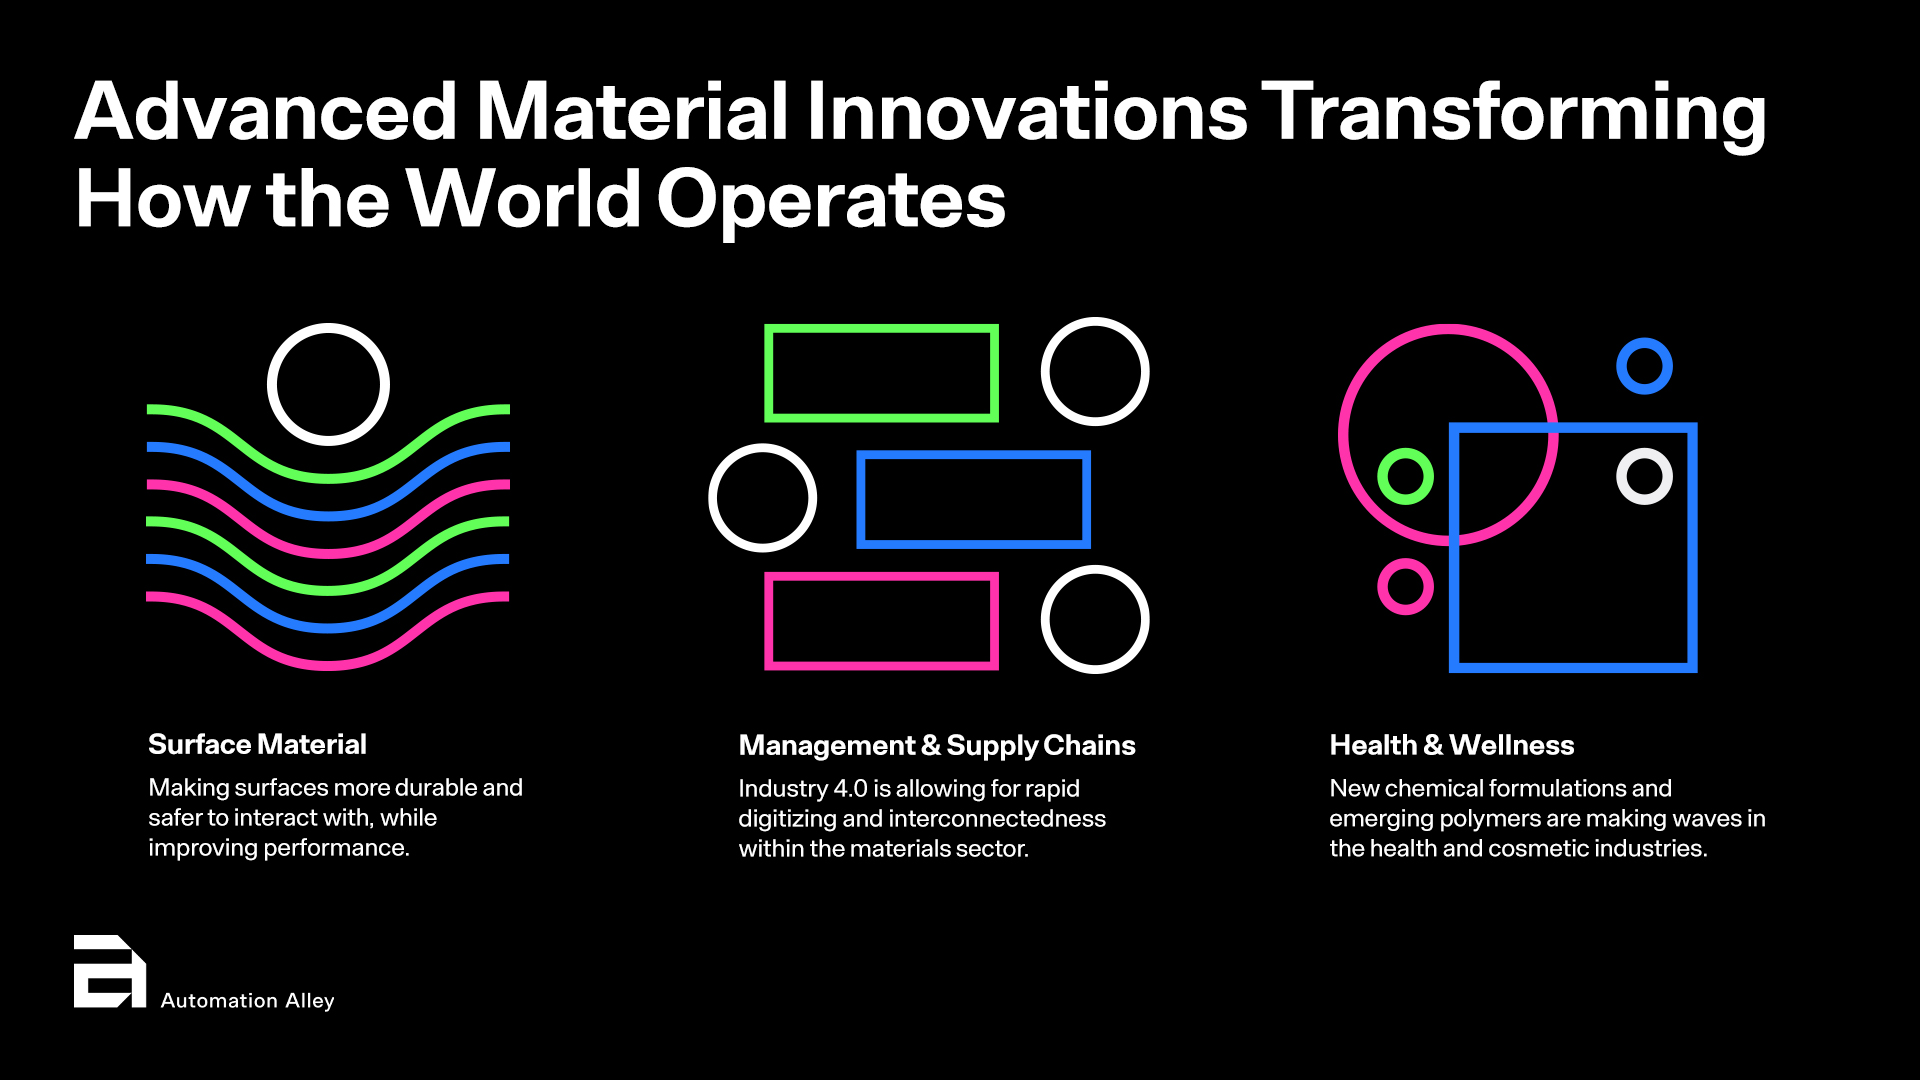 Advanced Materials are Reshaping the World